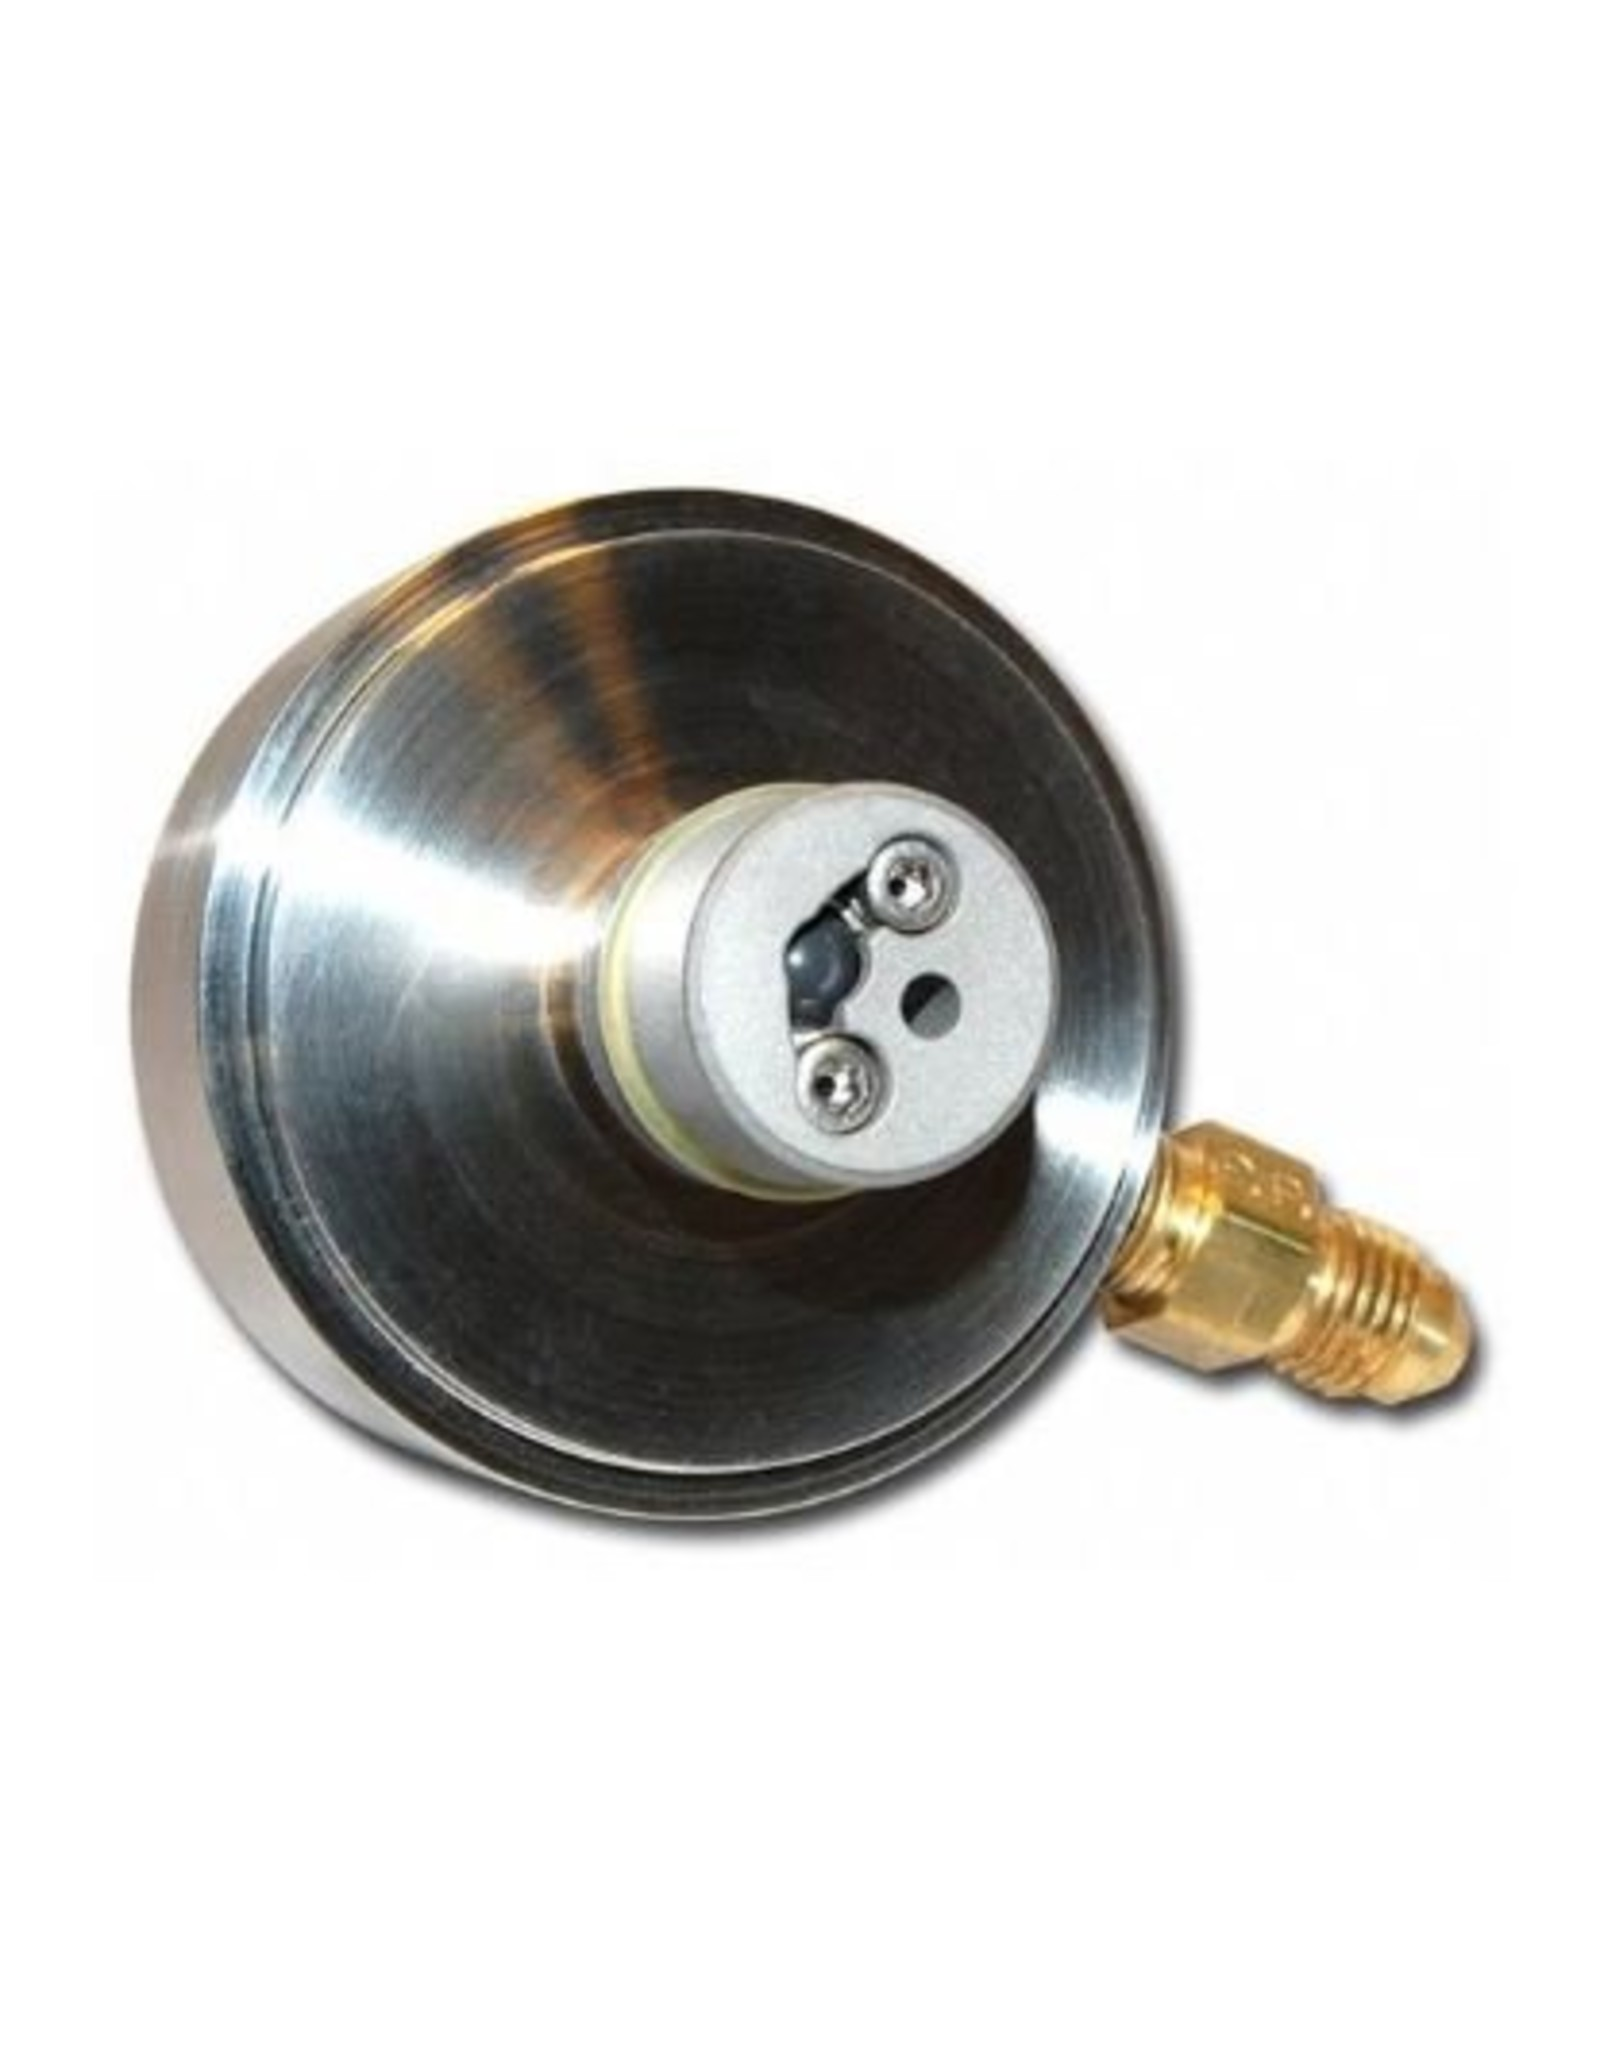 OMAX Style Check Valve Assembly (P3050/P4055)